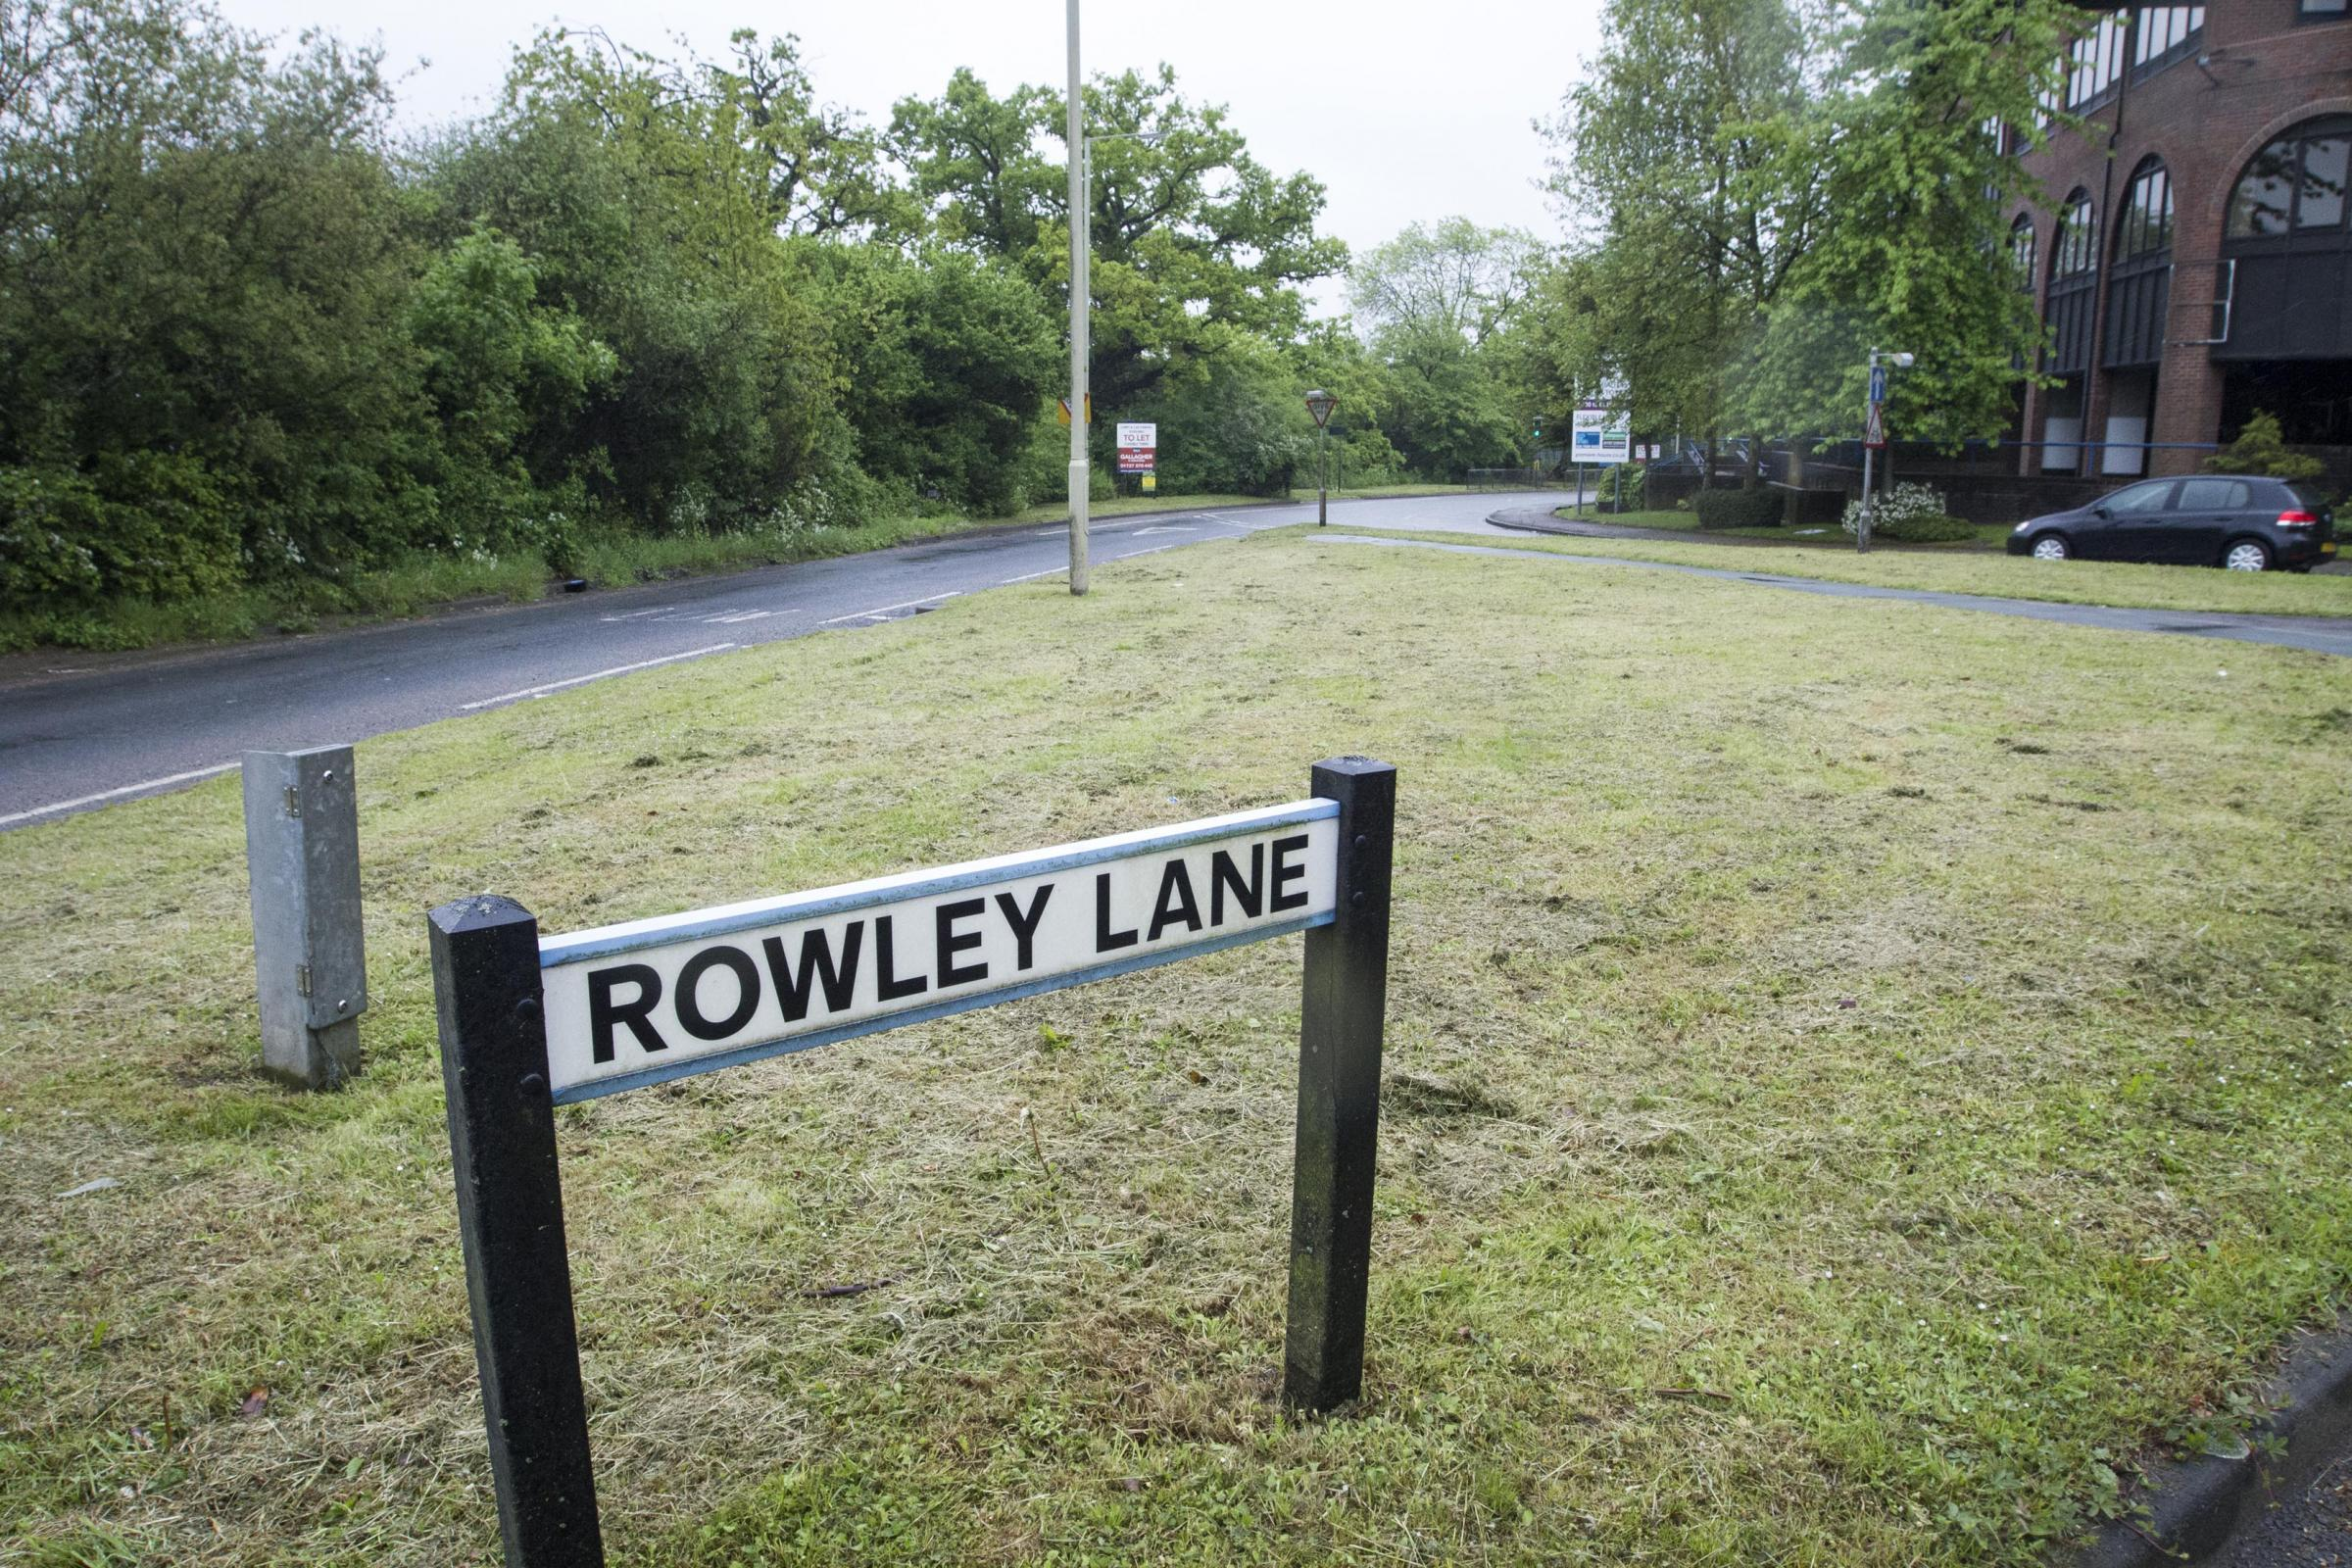 The 20,000 seat stadium is due to include indoor and outdoor training facilities and is thought to be planned for Rowley Lane